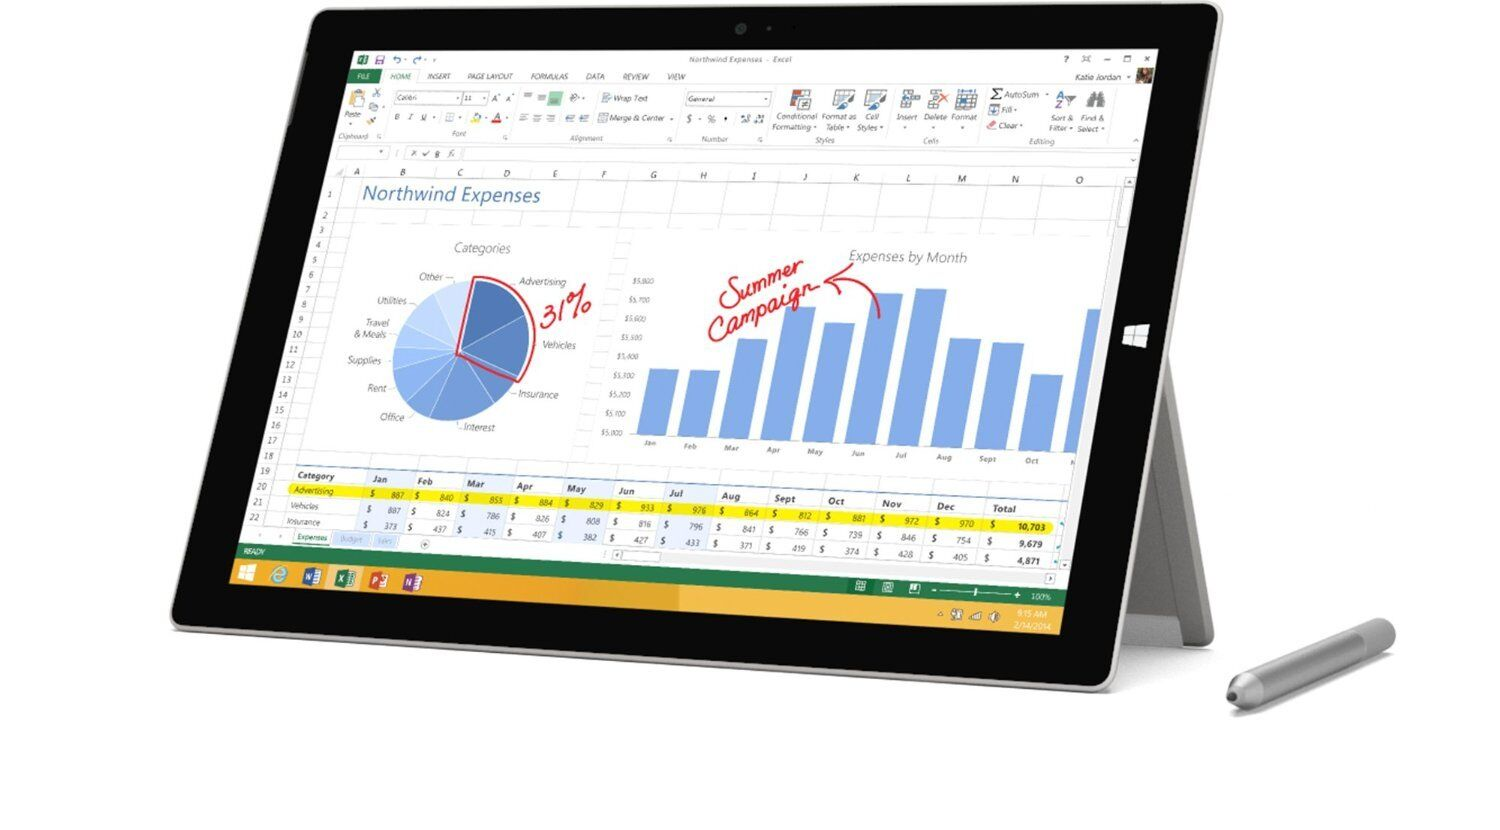 $679.95 - New Microsoft Surface Pro 3 12